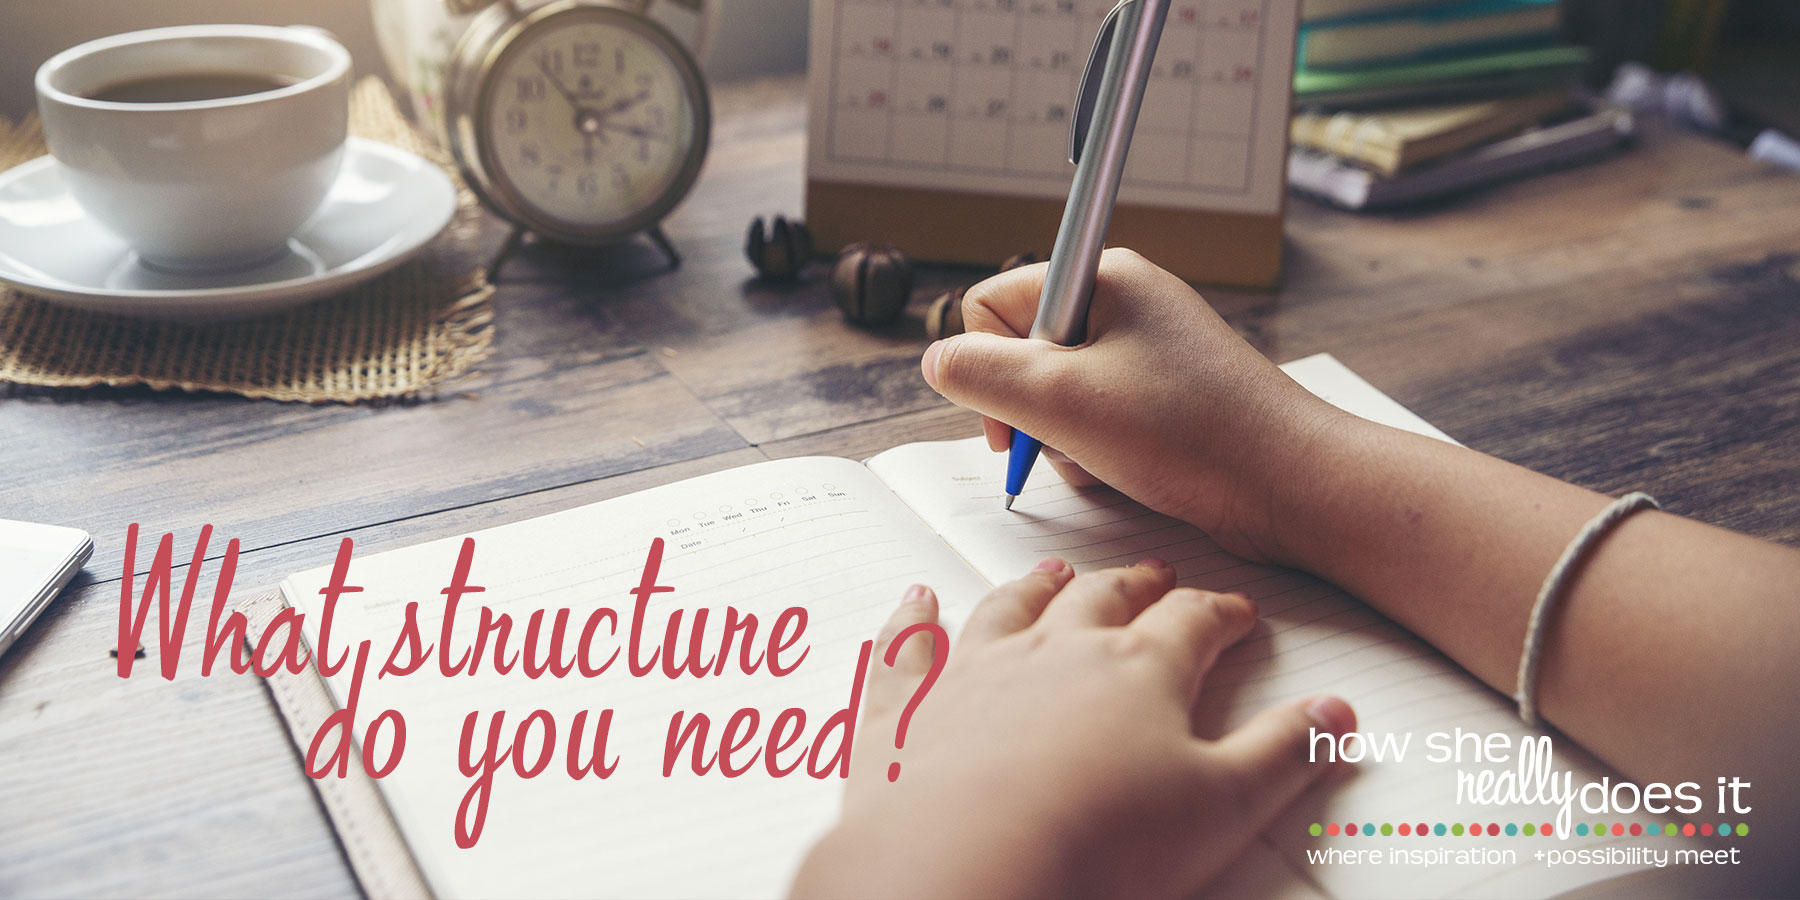 What structure do you need?